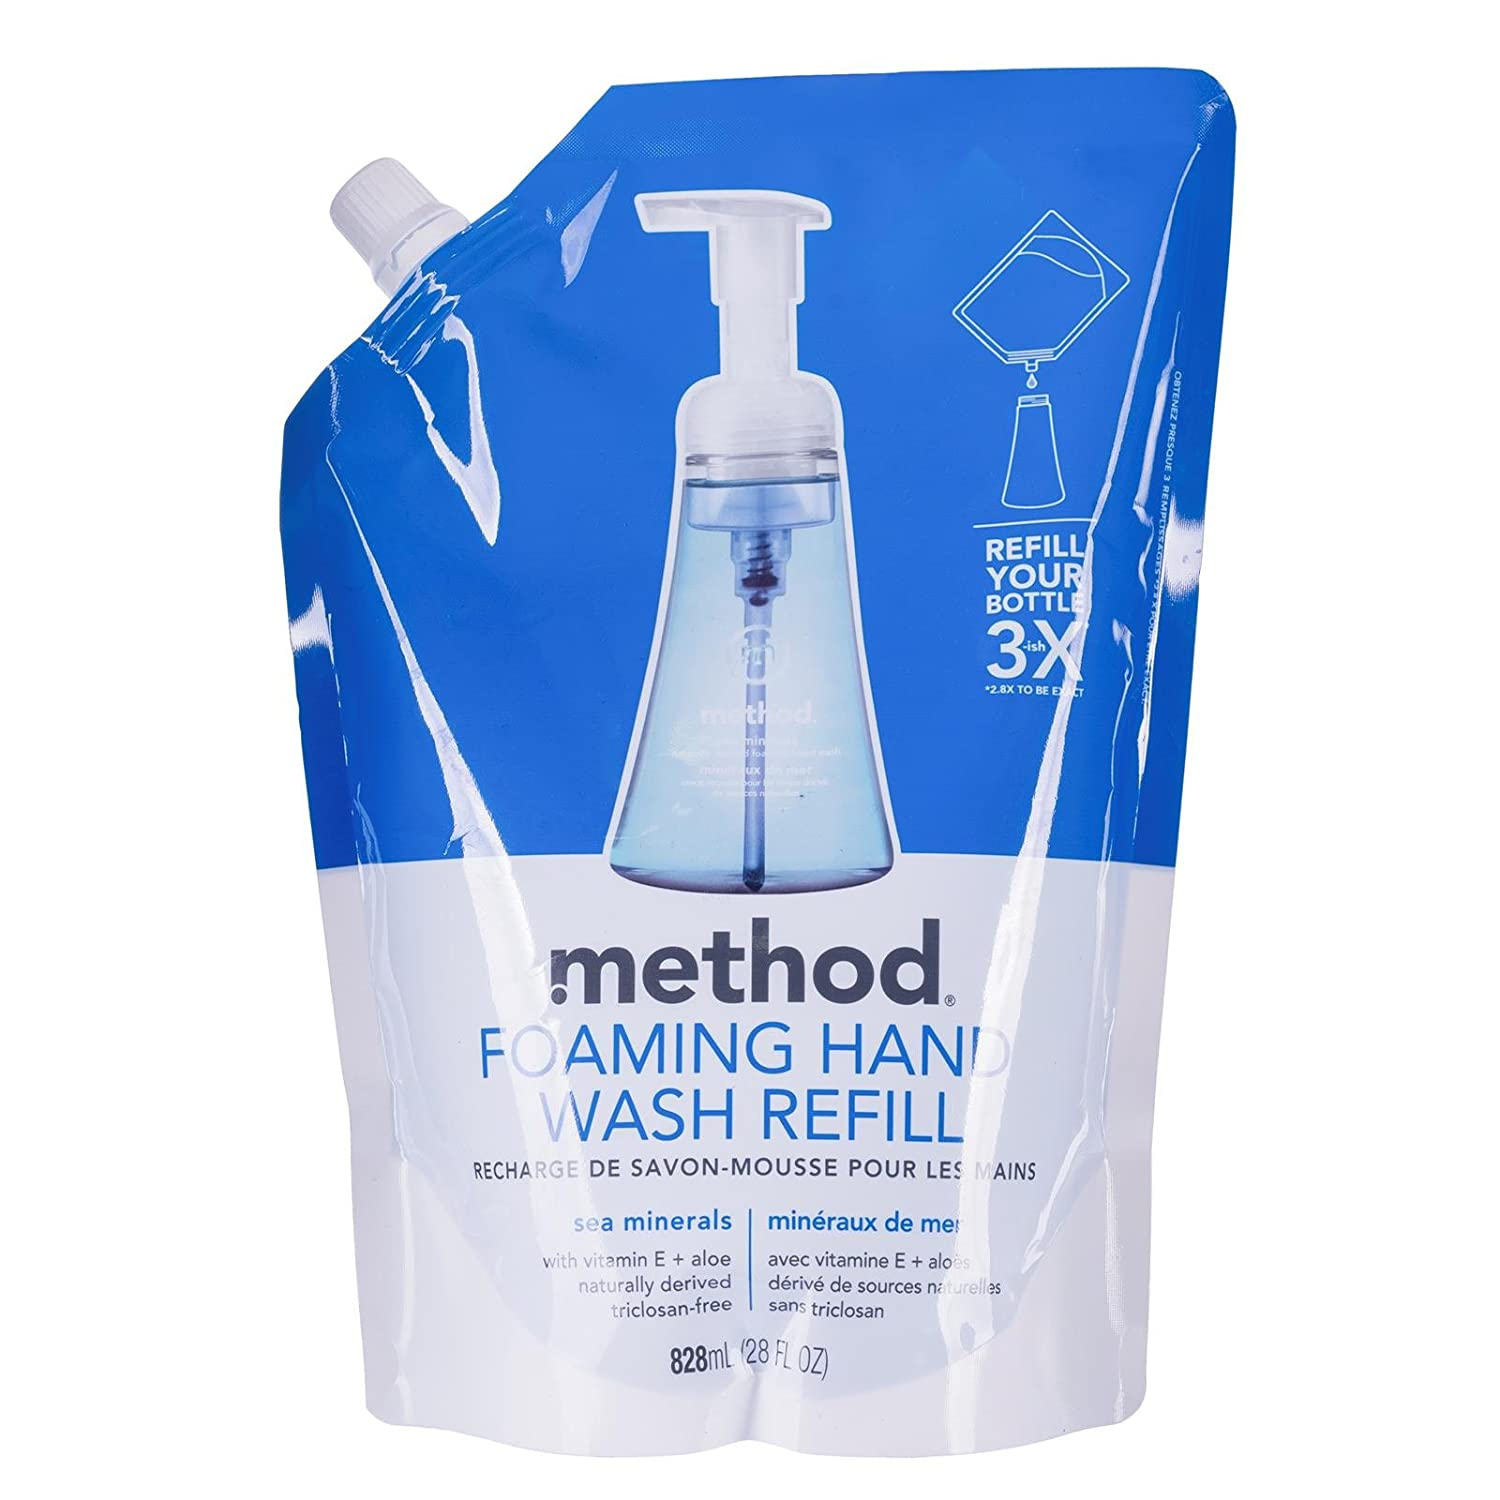 Method Foaming Hand Soap Refill, Sea Minerals, 28 Ounce